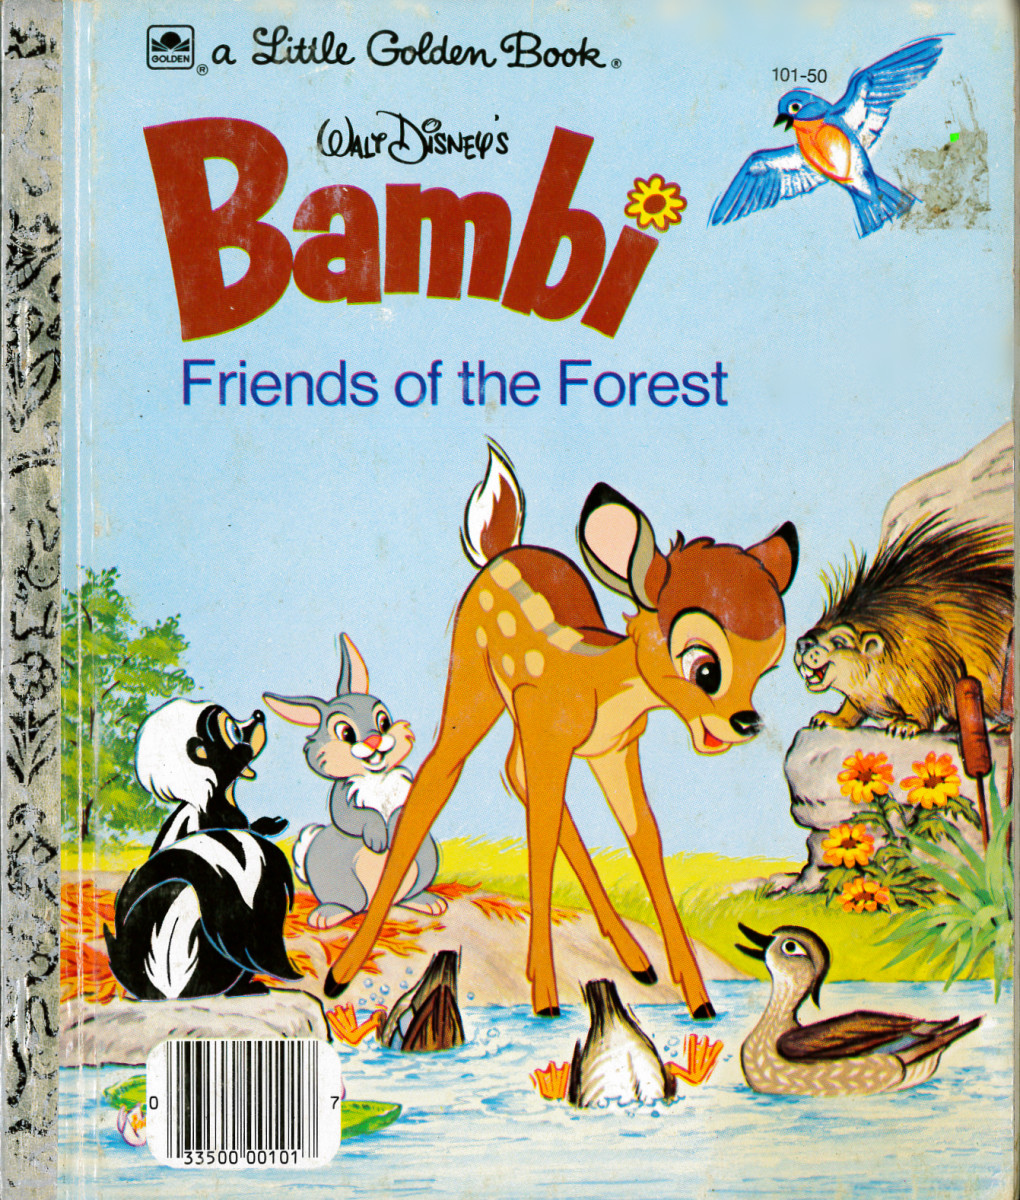 The Walt Disney Company has done a commendable job and amazing job in the formation of this brief but wonderful tale. Bambi and the others animals of the forest all have solid, and very likable character traits, & this comes through remarkably well.